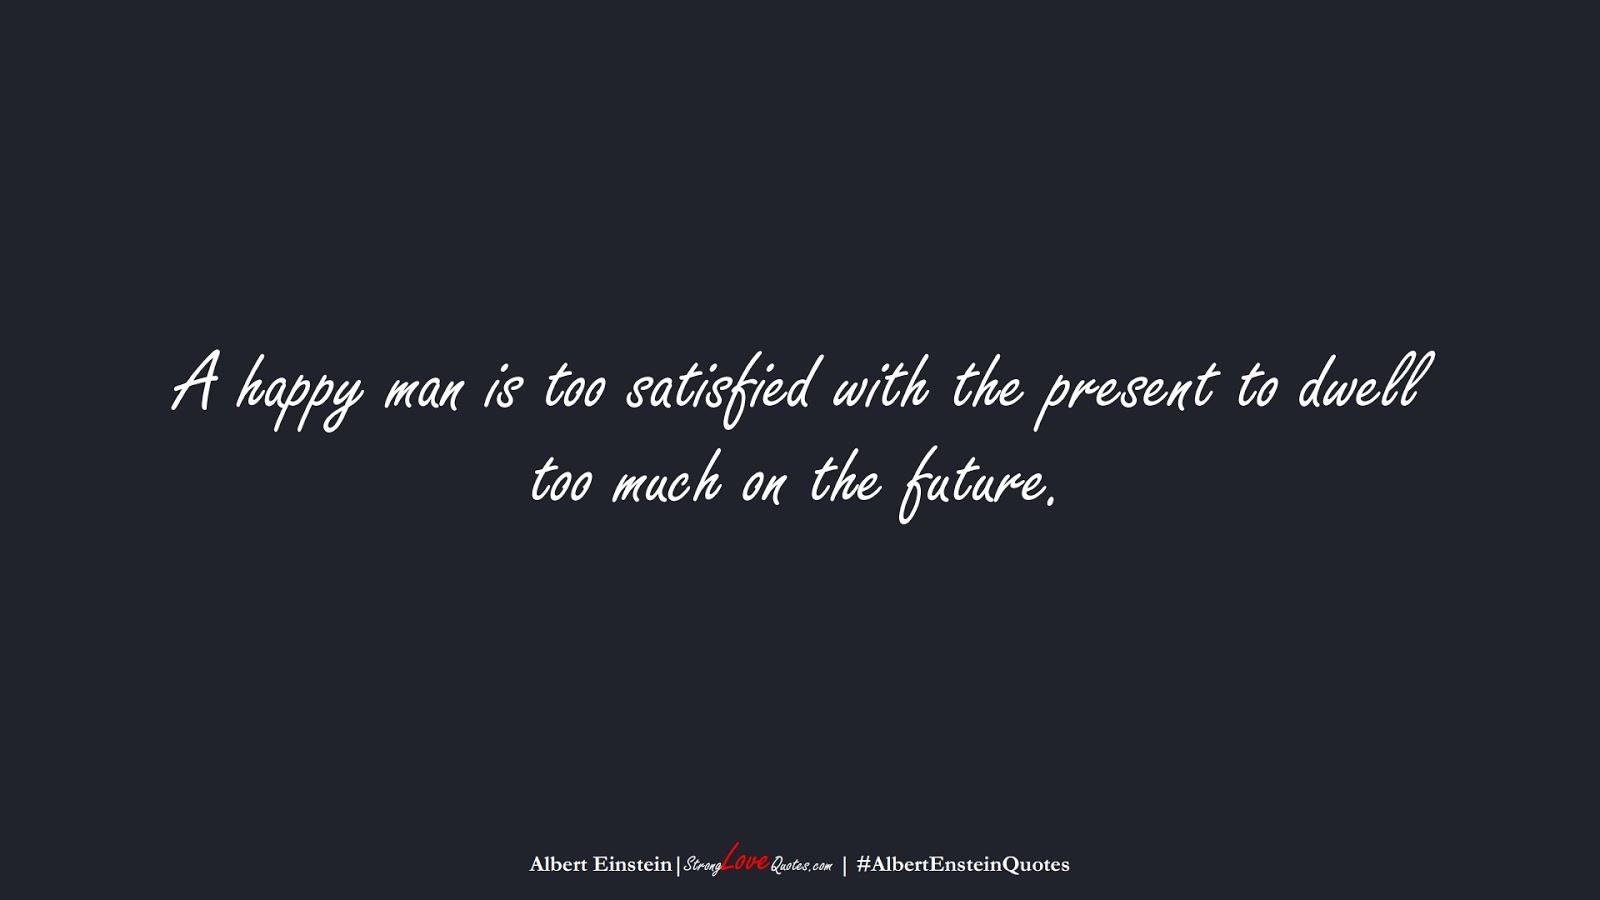 A happy man is too satisfied with the present to dwell too much on the future. (Albert Einstein);  #AlbertEnsteinQuotes